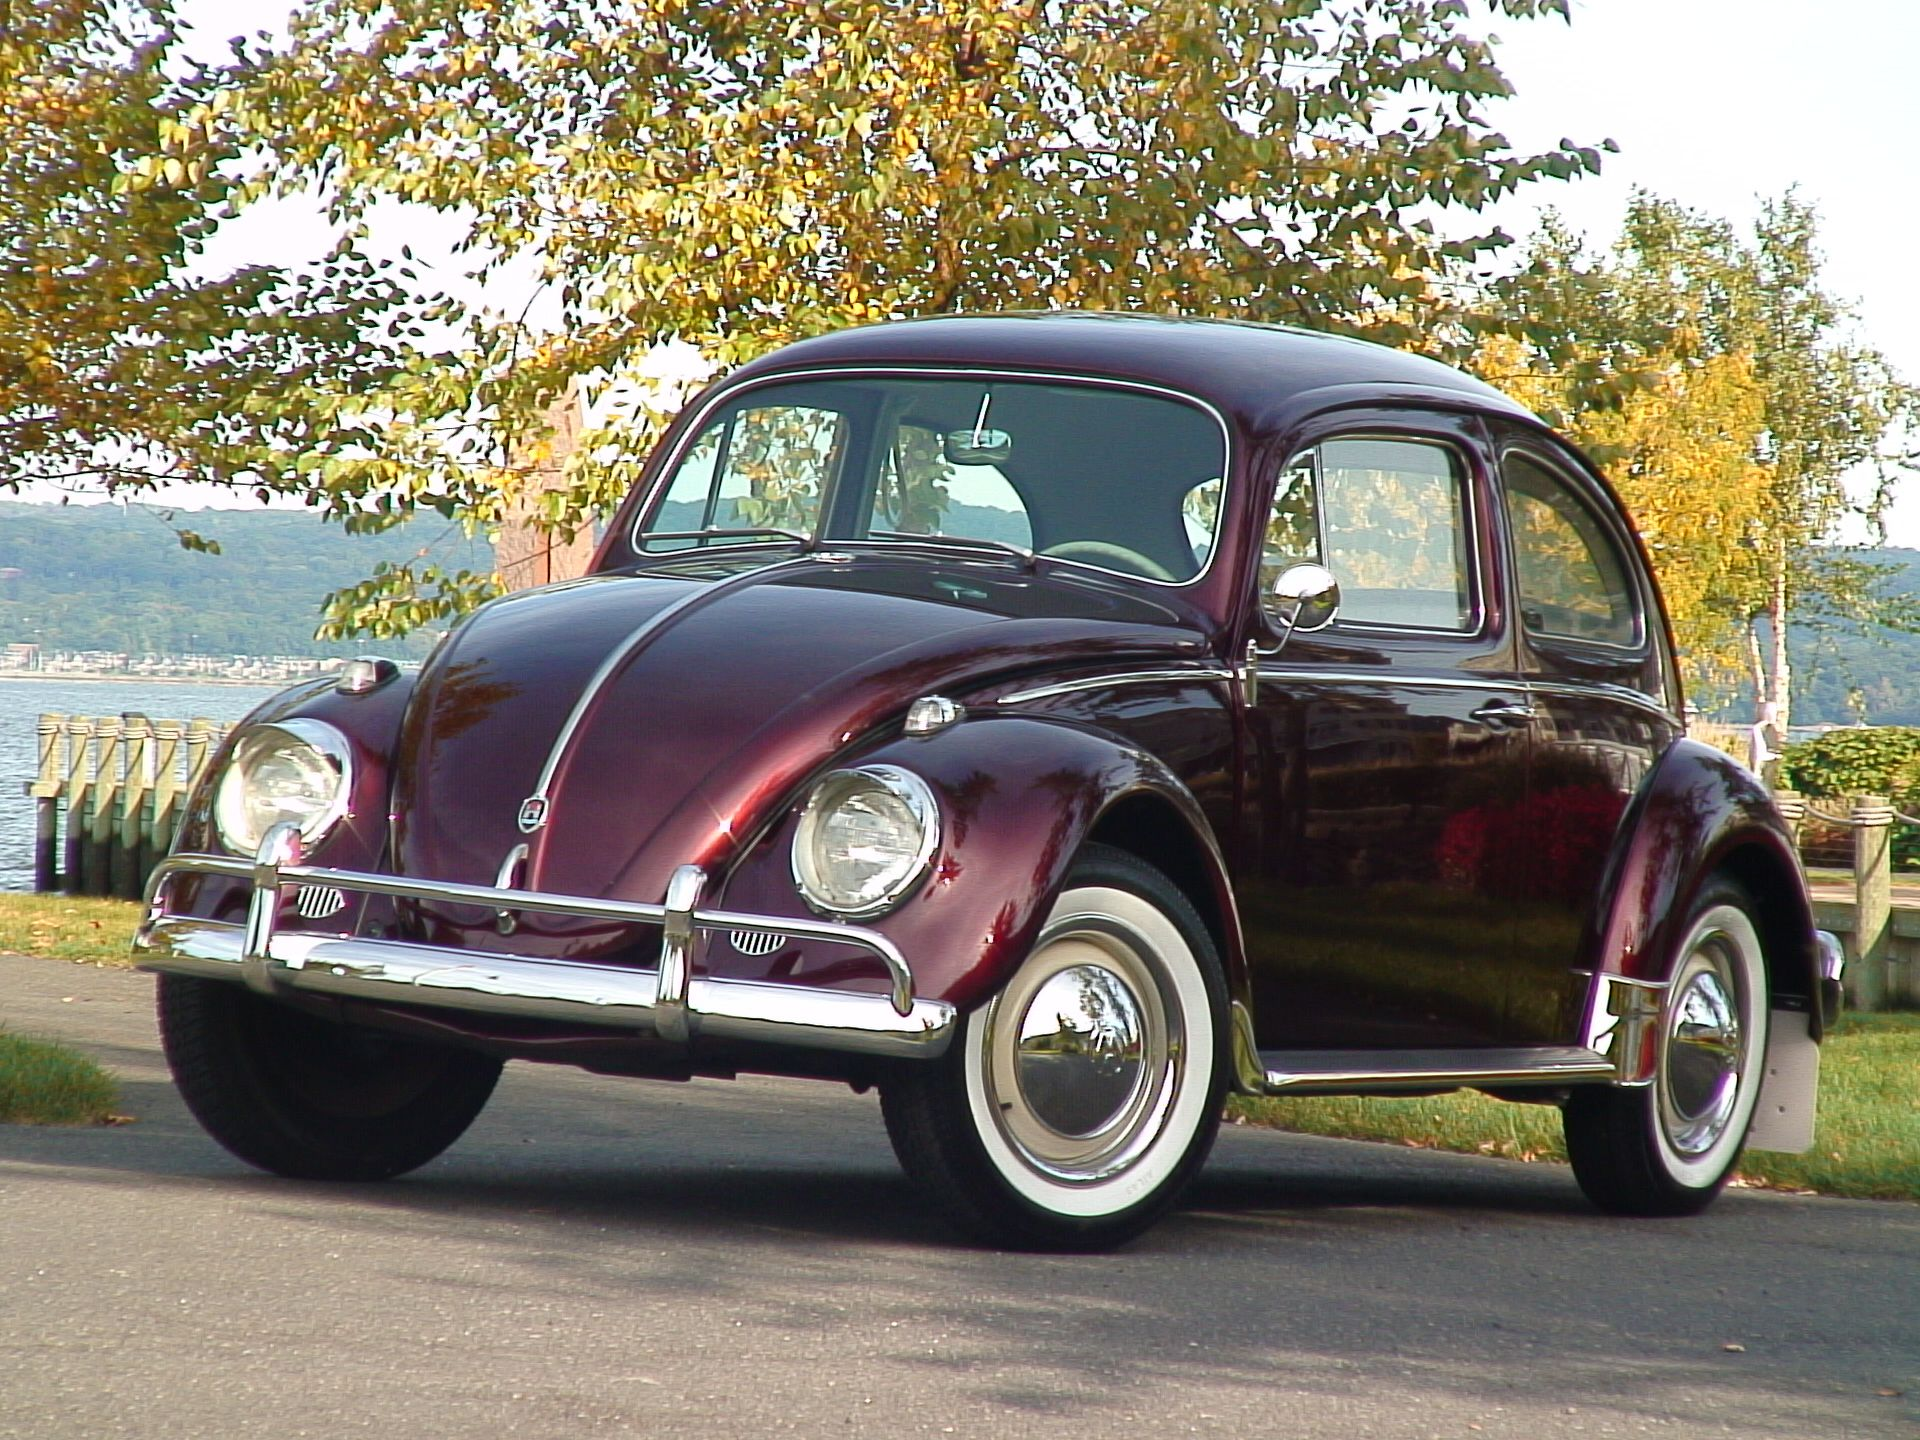 classic vw beetle  stunner vw beetle bug sedan classic vw beetles bugs vehicles